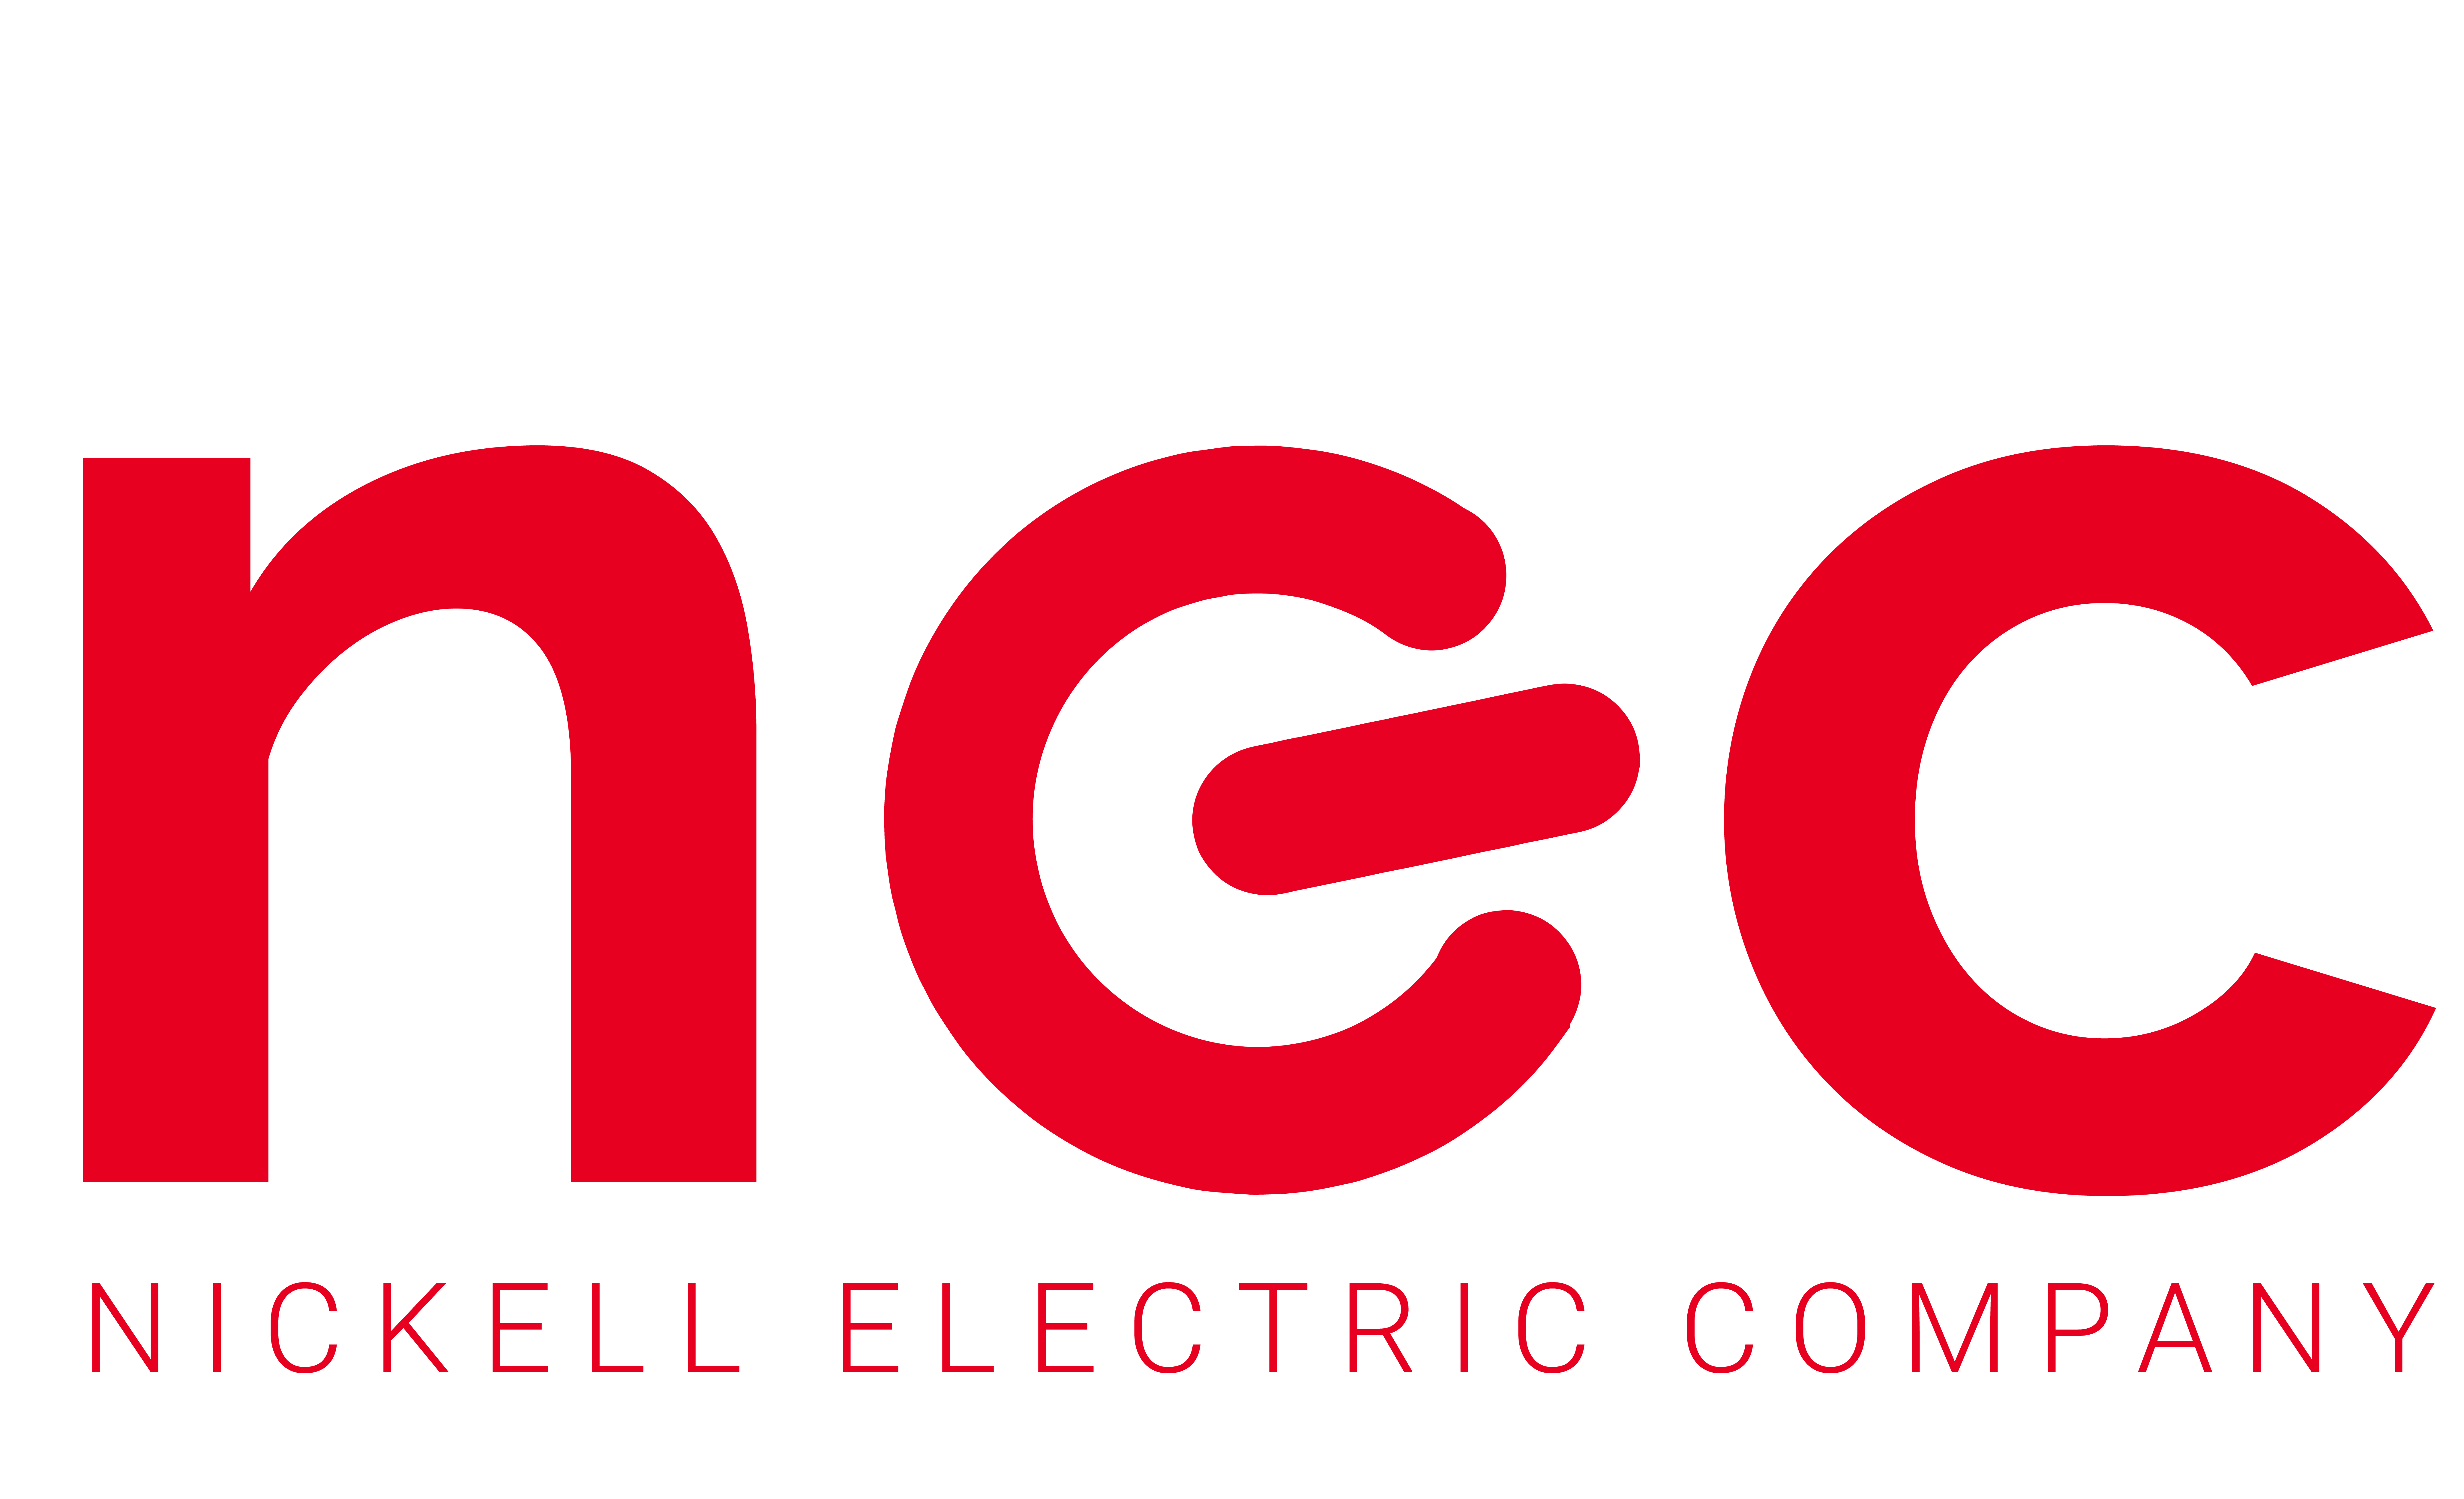 Nickell Electric Company